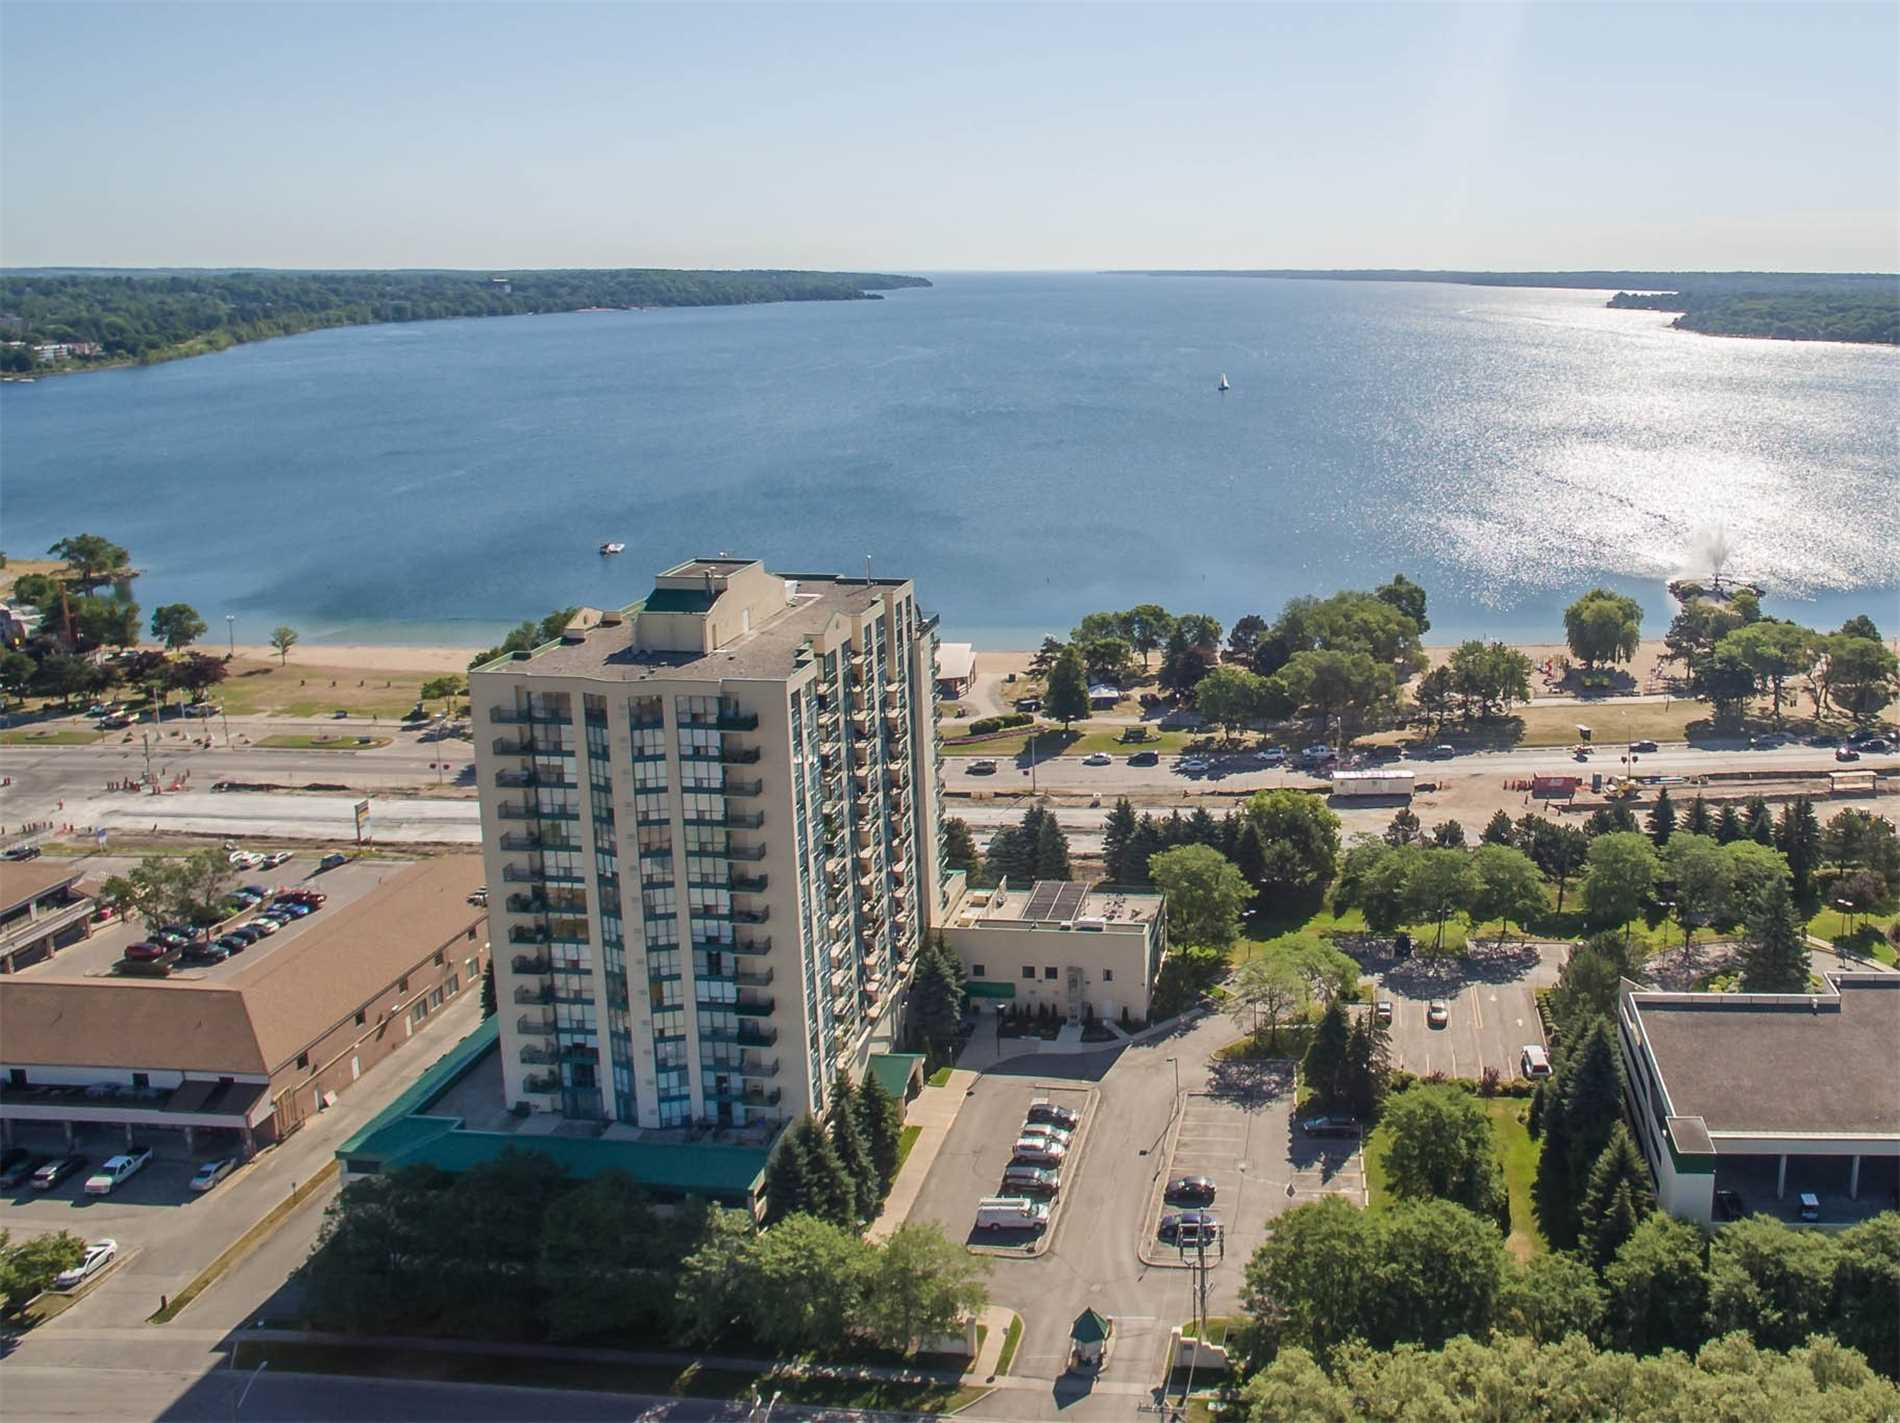 Lovely 2 Bed, 2 Bath 1,123 Sq Ft Suite At Marina Bay. Windows Facing East To See Morning Sunrise Over Kempenfelt Bay & W/O To Balcony With Panoramic View Of The City & Beautiful Sunsets To The West. Upgraded Laminate Floors, Beautiful Kitchen, Marble Back Splash, Quartz Counter, Pull Outs In Cupboards. Solarium Off Of Kitchen With Water Views. Lg Laundry/Storage Room, W/I Shower In Ensuite Bath. Quiet Friendly Bldg, Great Rec Facilities. Short Walk To Beach.